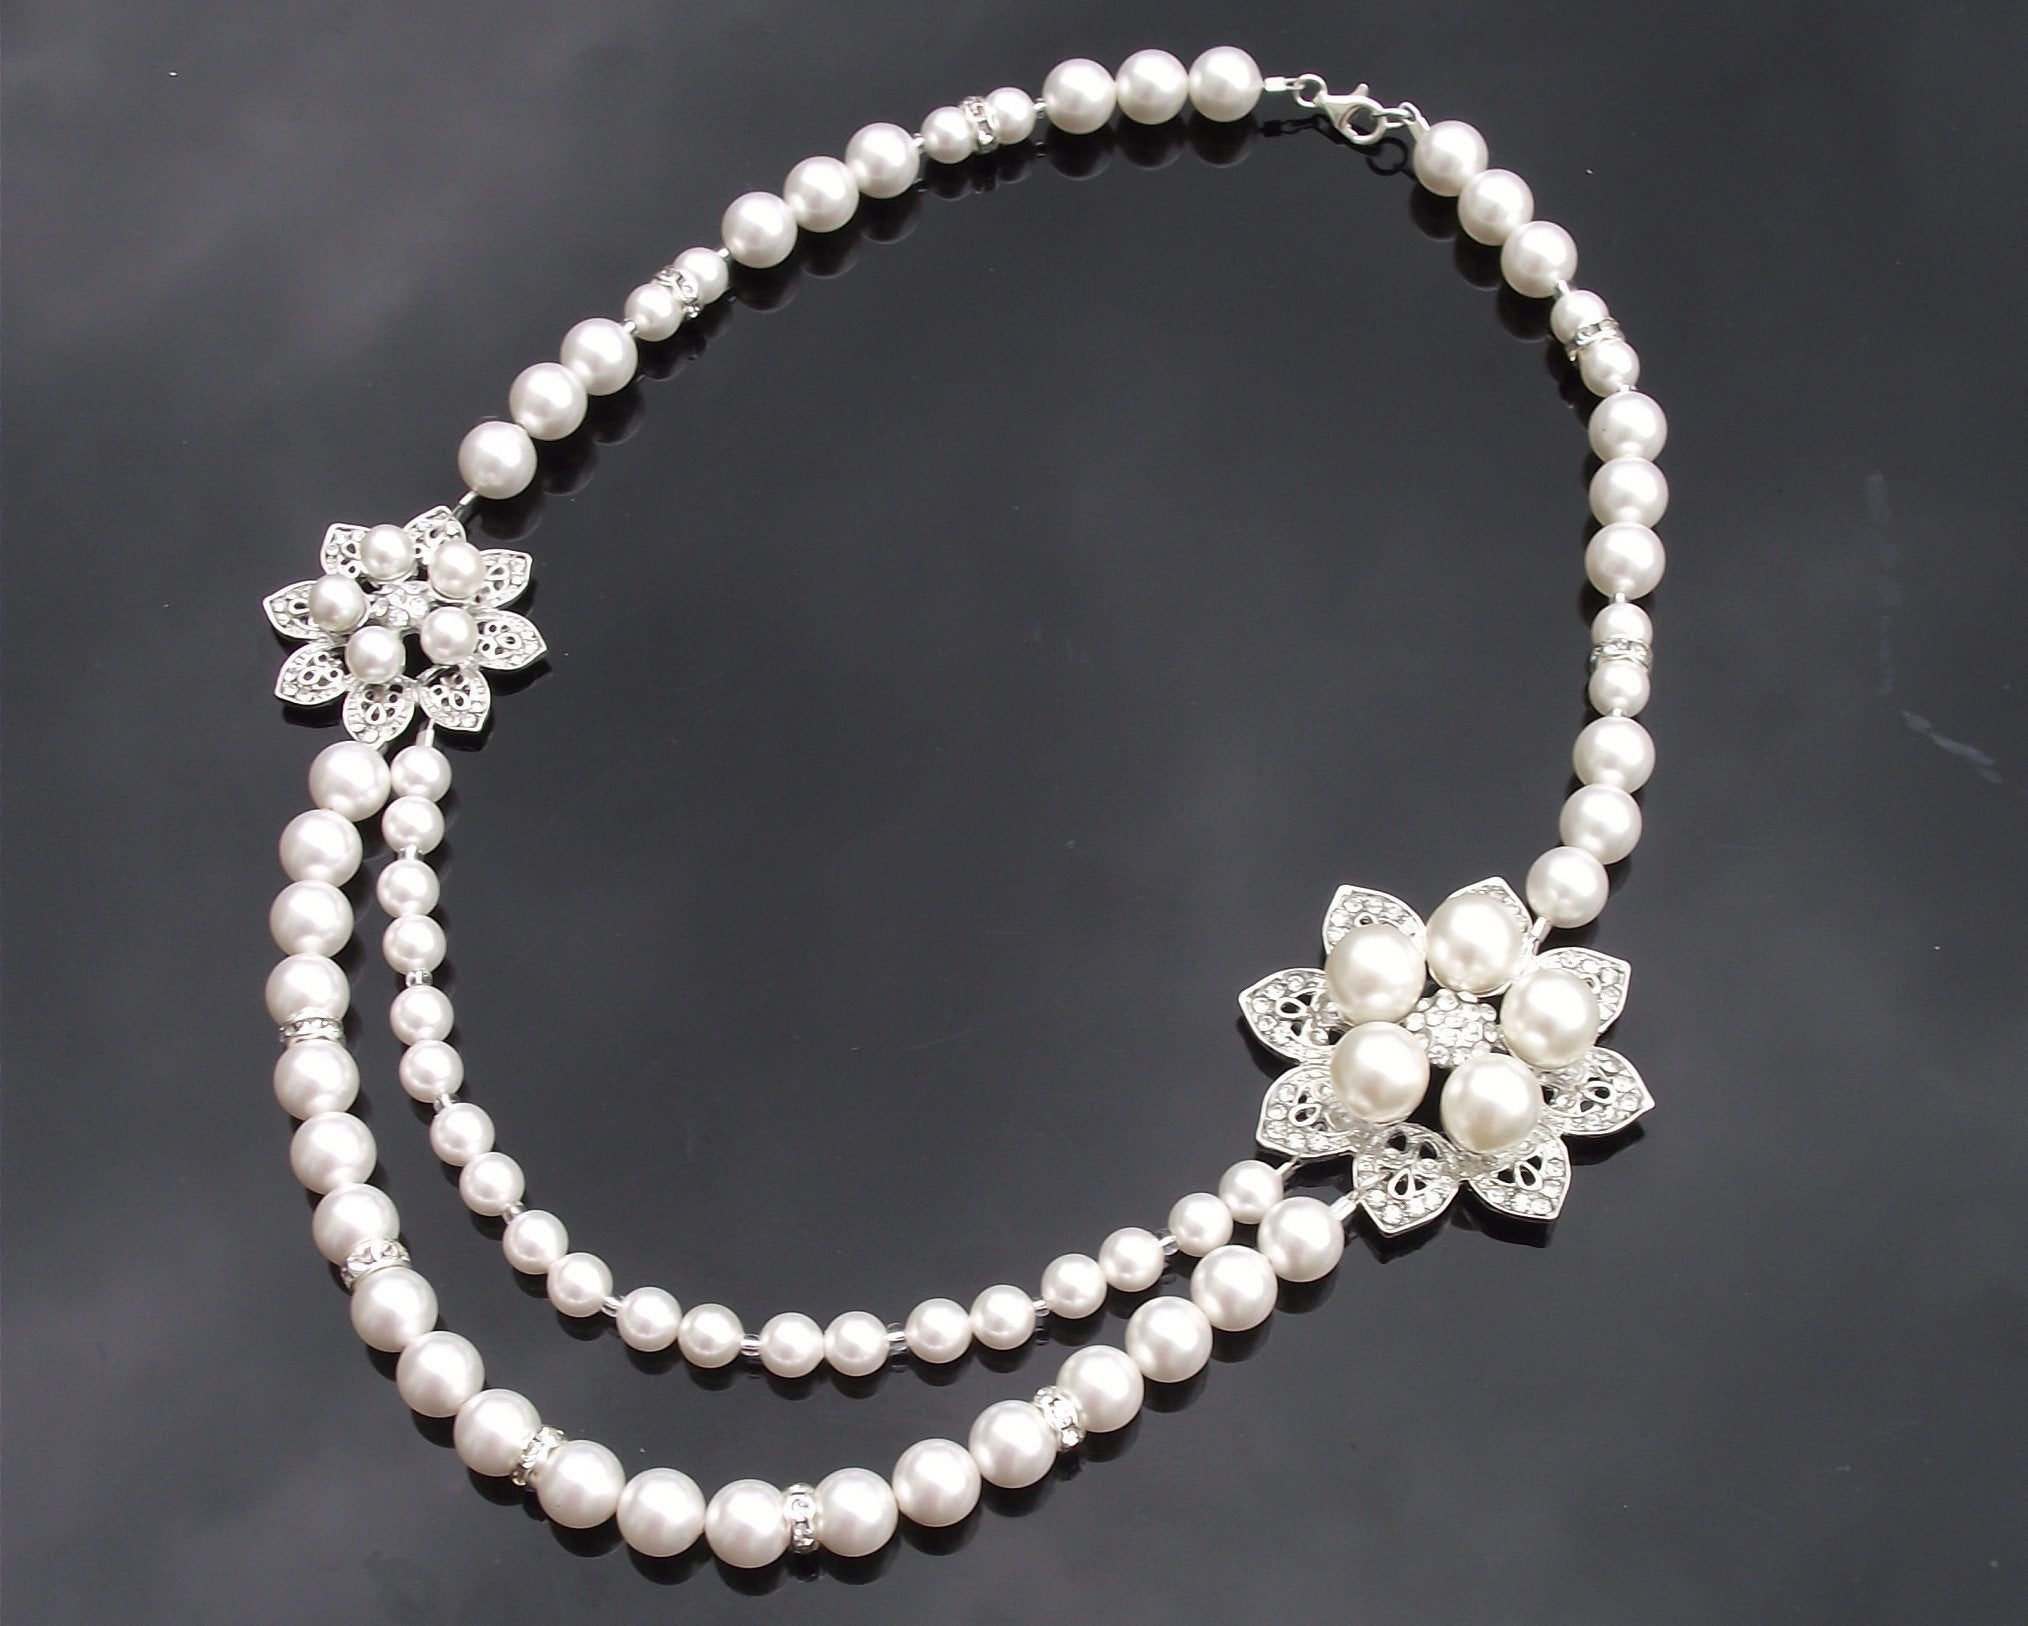 Wedding Necklace - Vintage Style Bridal Necklace, Double Row Swarovski Pearls, Alyson